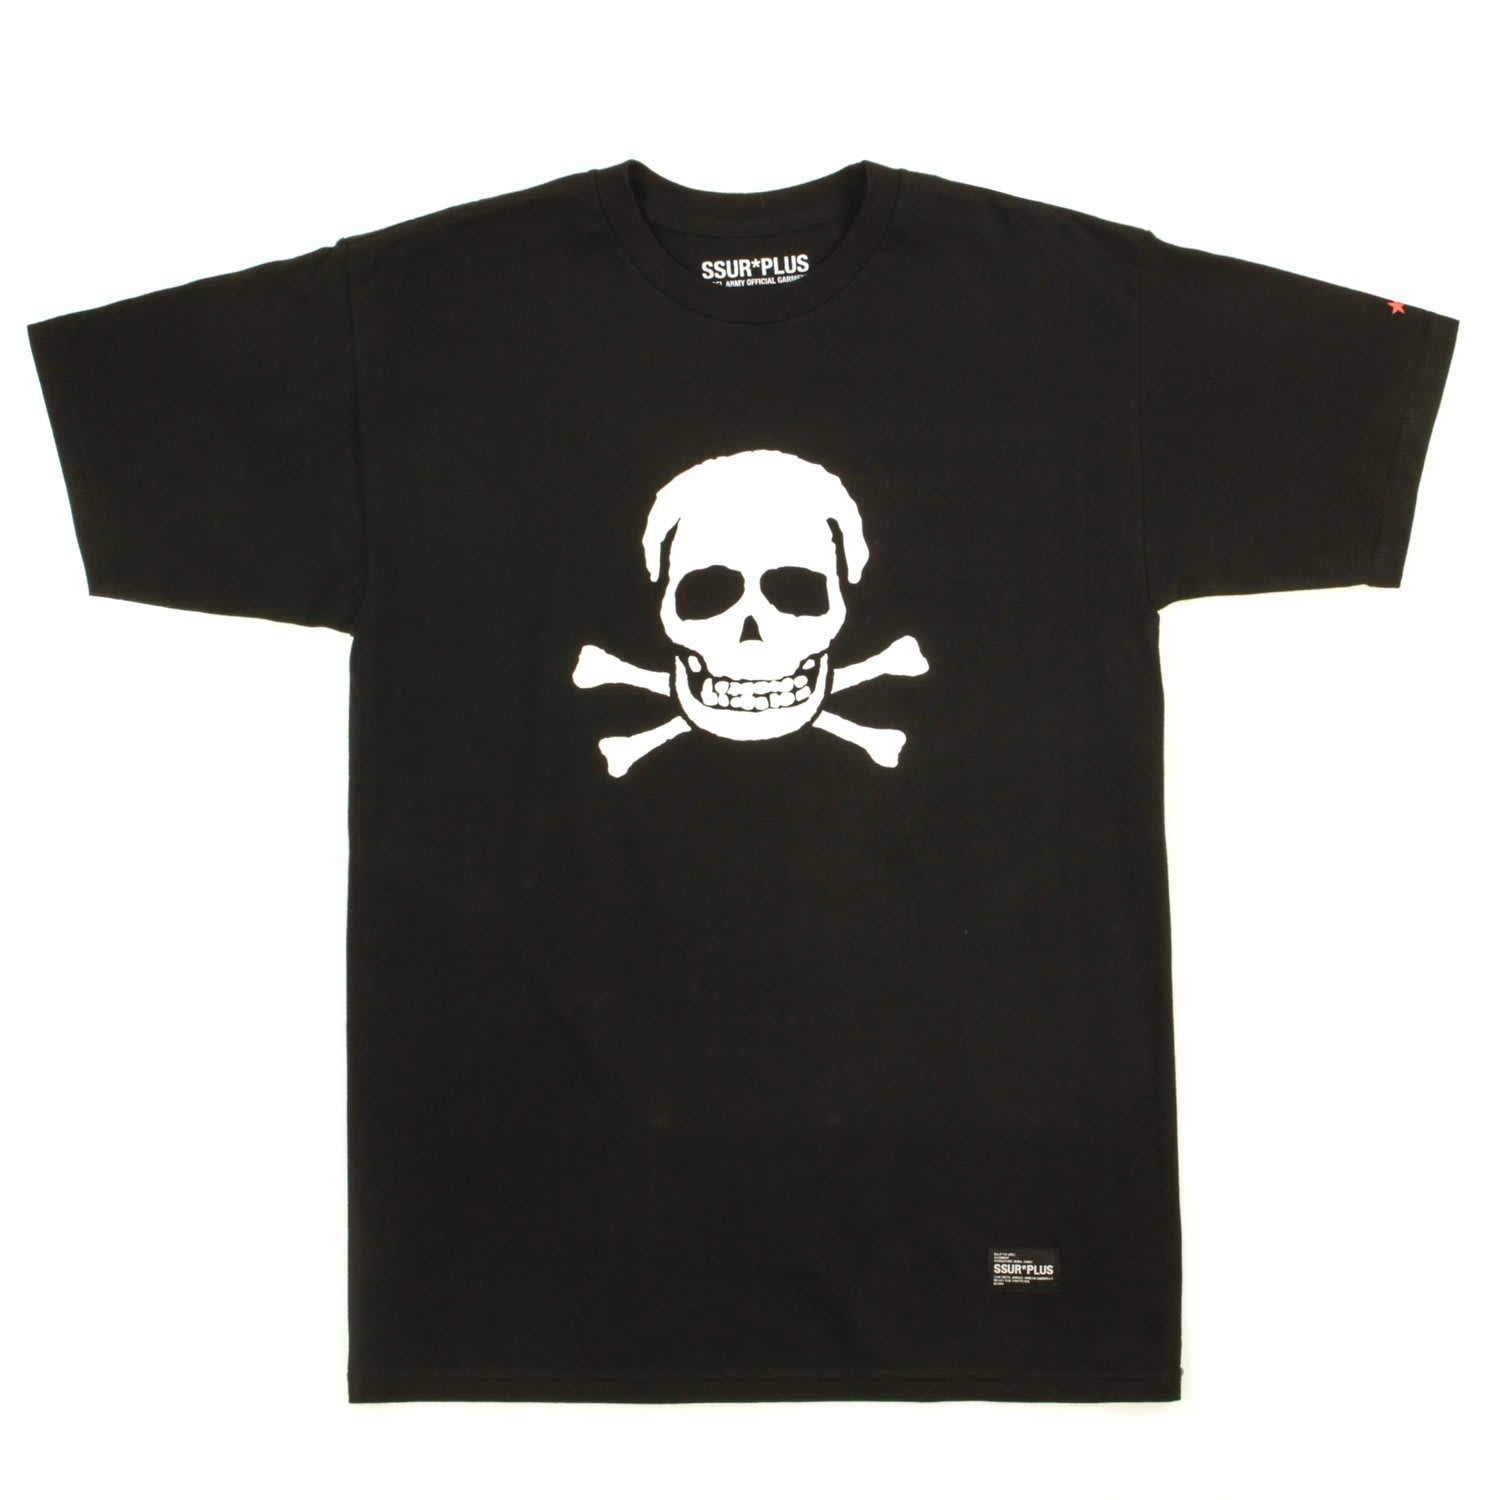 [WESTYLE] SSUR*PLUS CONTROLLED SUBSTANCE TEE 陳冠希 SSUR